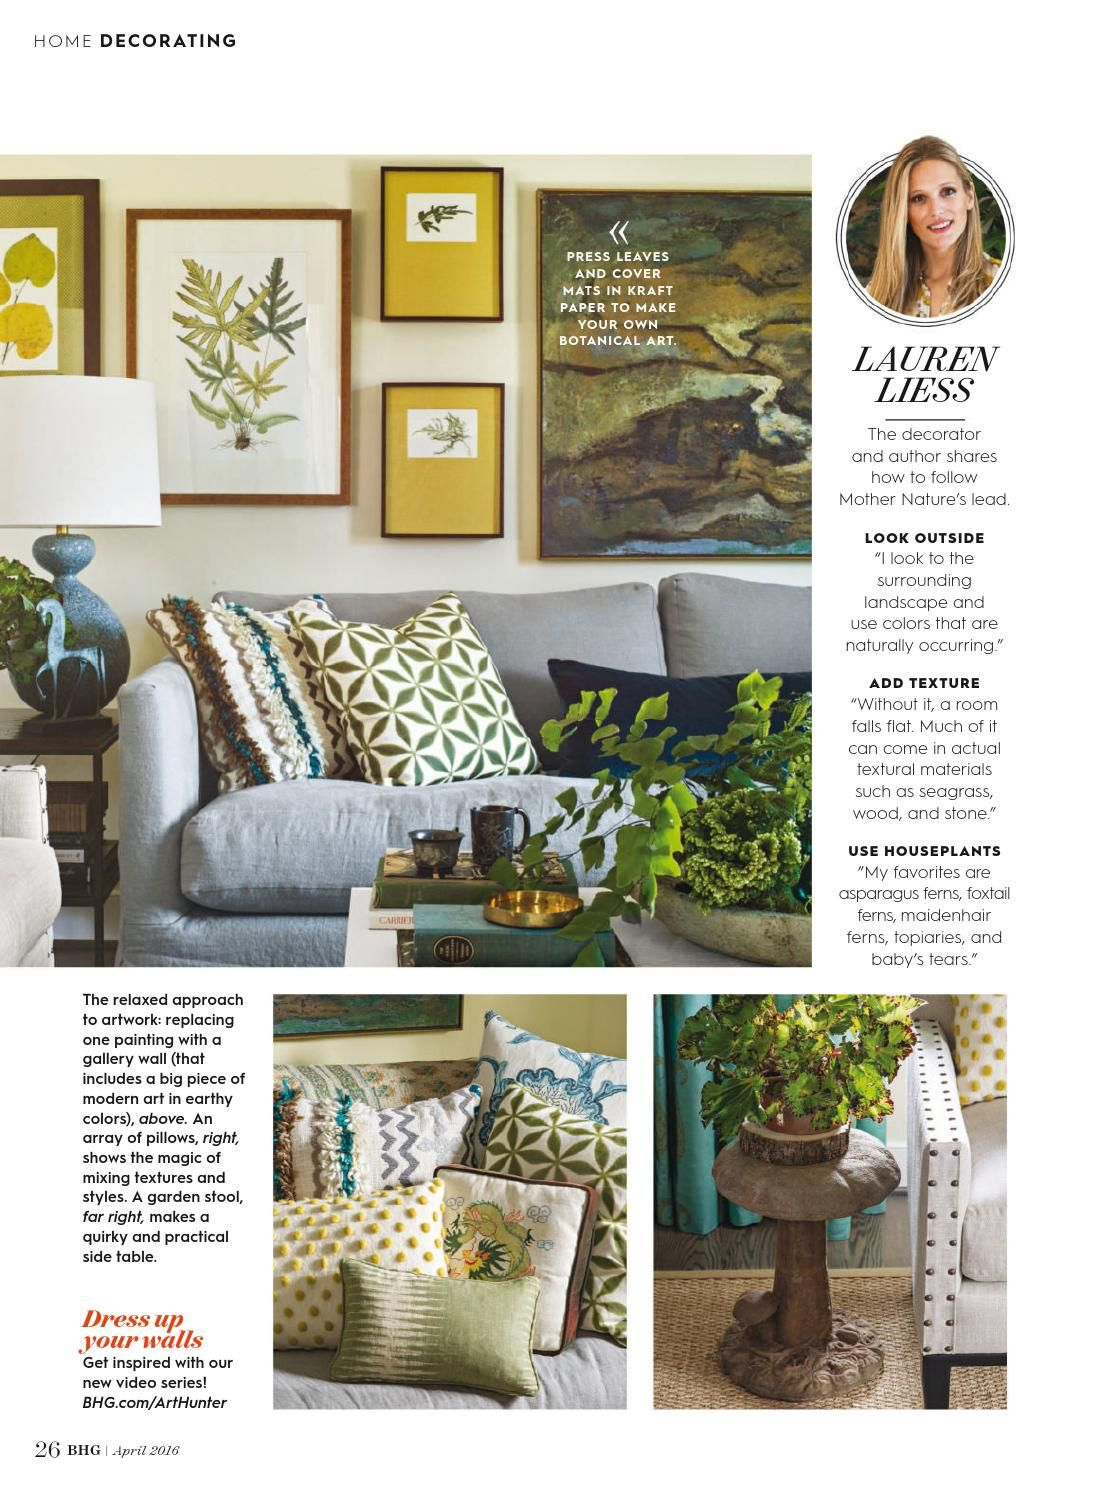 f16c34c3a288fce6e5ffd9995ad6c813 - Better Homes And Gardens April 2016